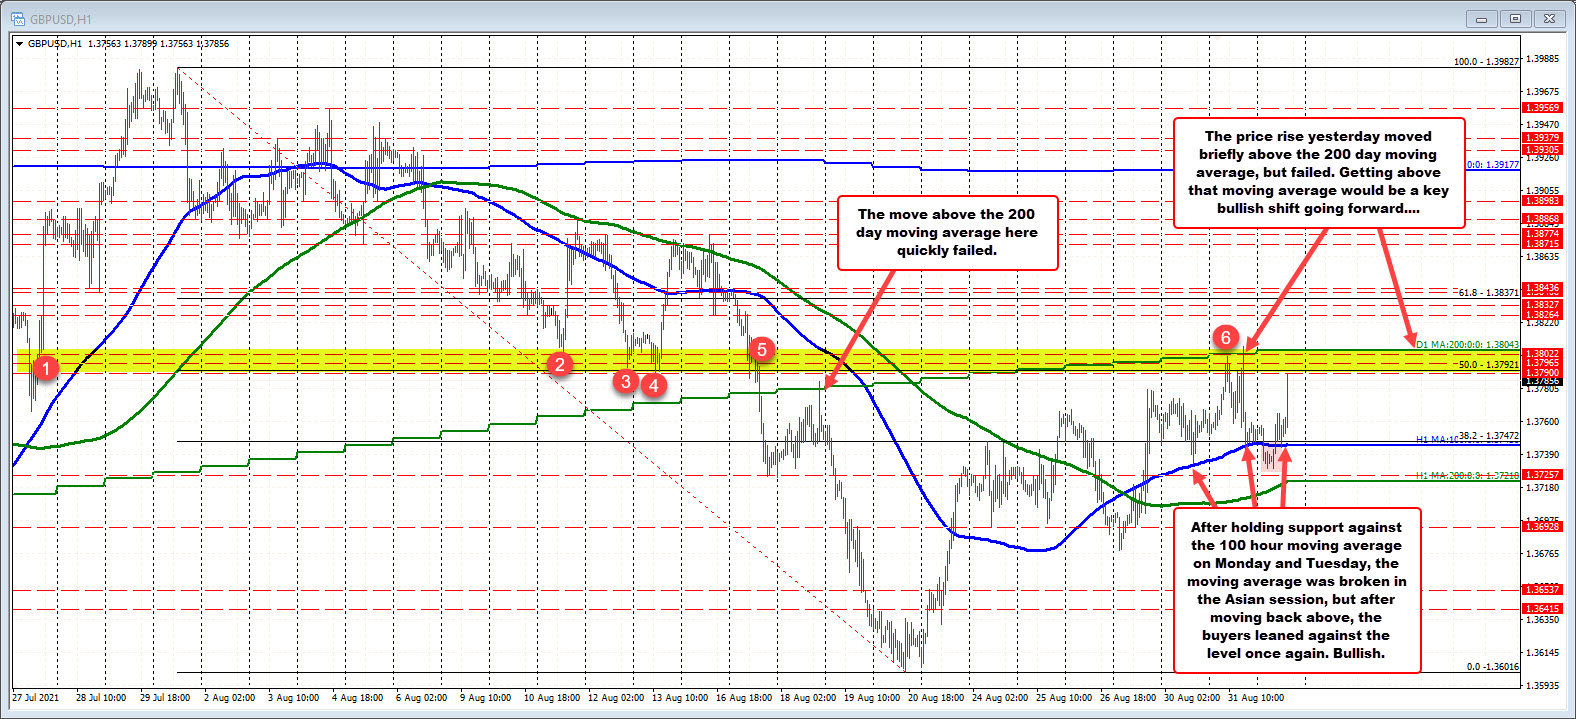 Midpoint comes in at 1.37921. Swing area between 1.3790 and the 200 day moving average at 1.38043_